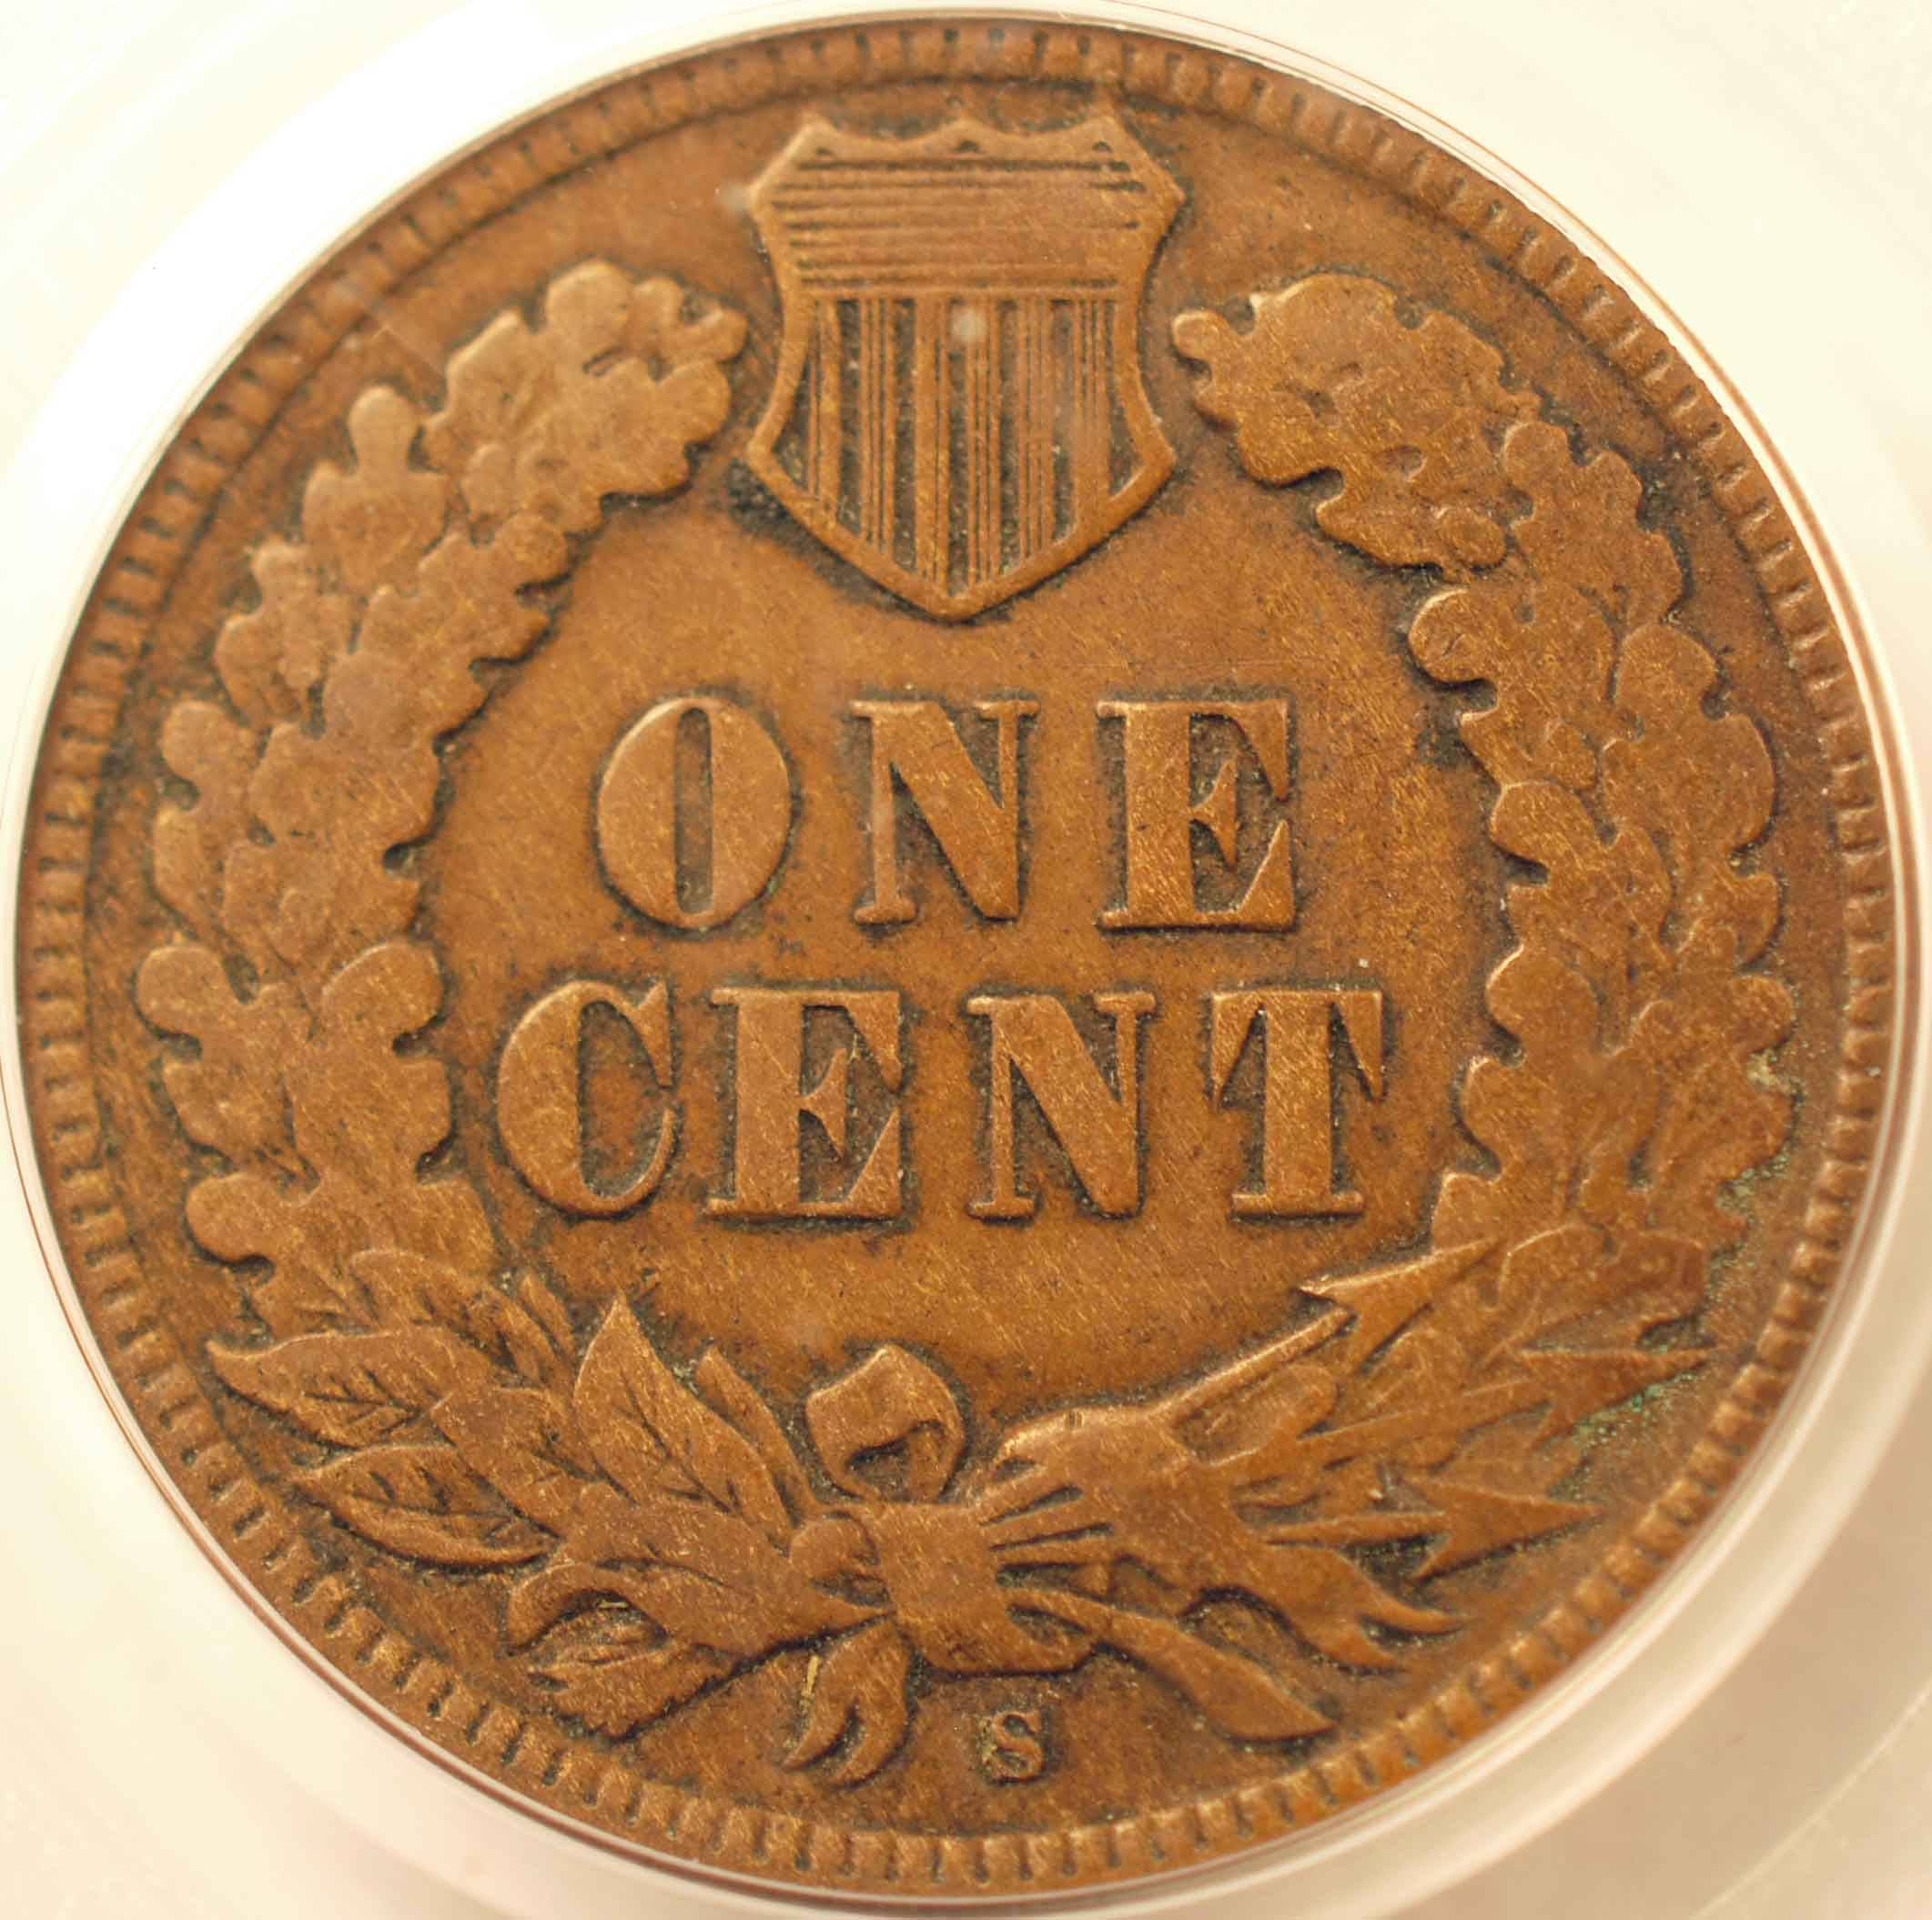 1908-S Indian Cent PCGS F15 Reverse